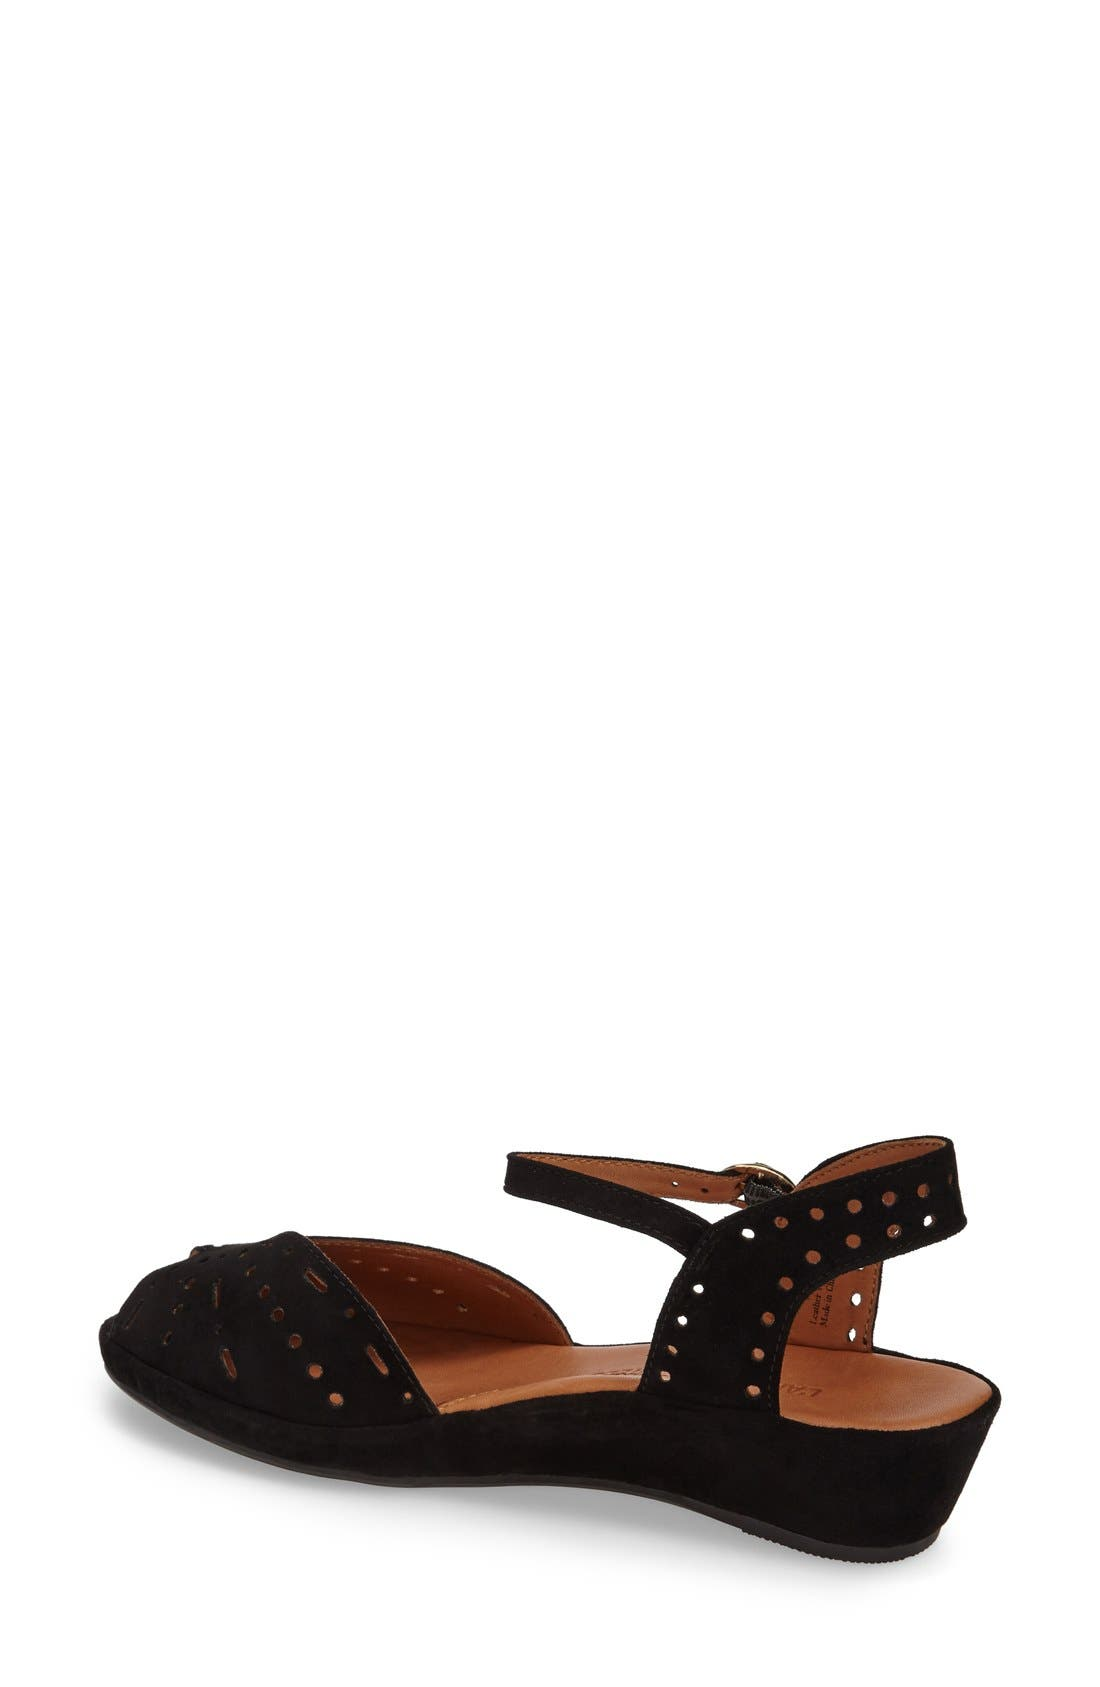 'Brenn' Ankle Strap Sandal,                             Alternate thumbnail 8, color,                             BLACK SUEDE